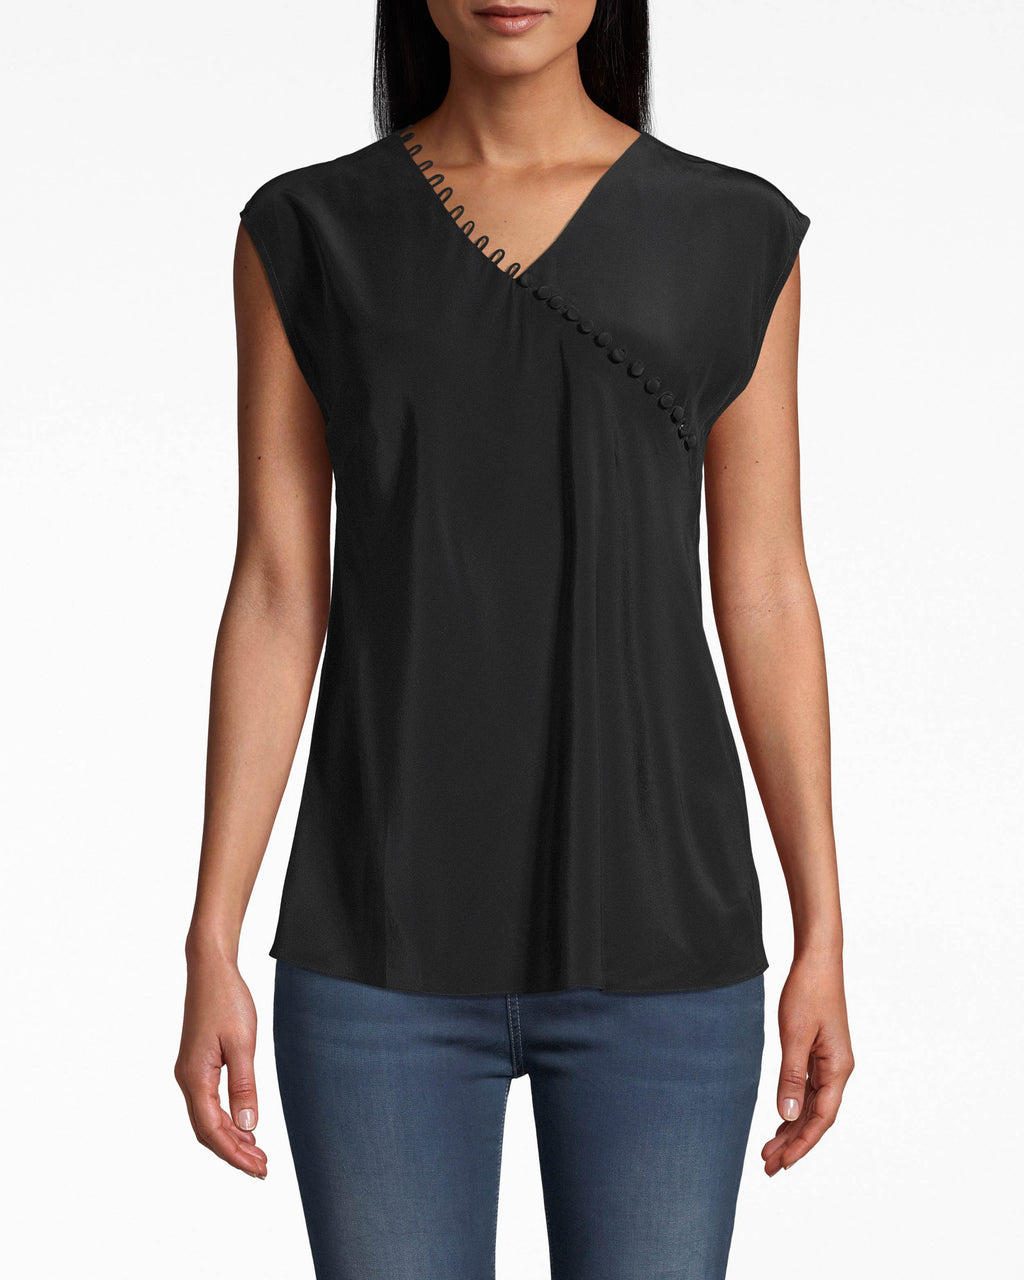 BE10399 - SOLID SILK BUTTON LOOP BLOUSE - tops - blouses - YOU'LL BE HAPPY TO KNOW THIS SURPLICE TANK ALREADYGOES WITH JUST ABOUT EVERYTHING IN YOUR CLOSET. BUTTON DETAILING UPGRADES THIS BASIC TO ANYTHING BUT.